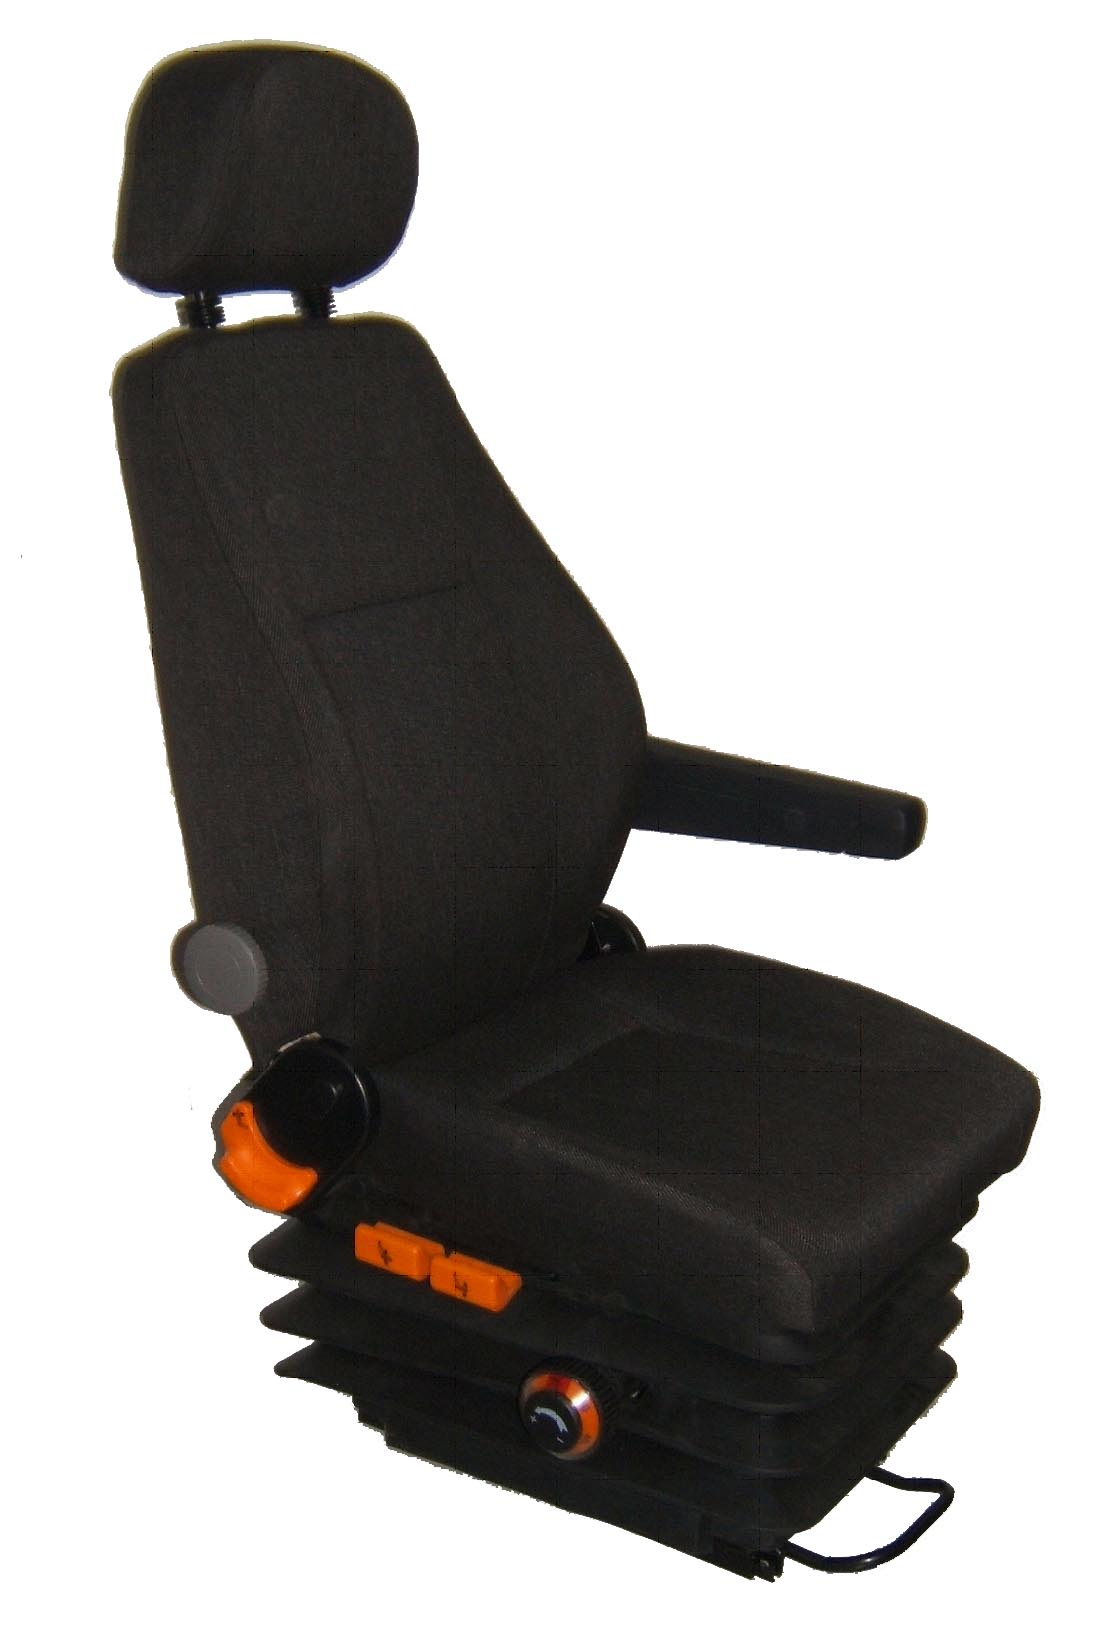 BDM-5 Mechanical Suspension Seat